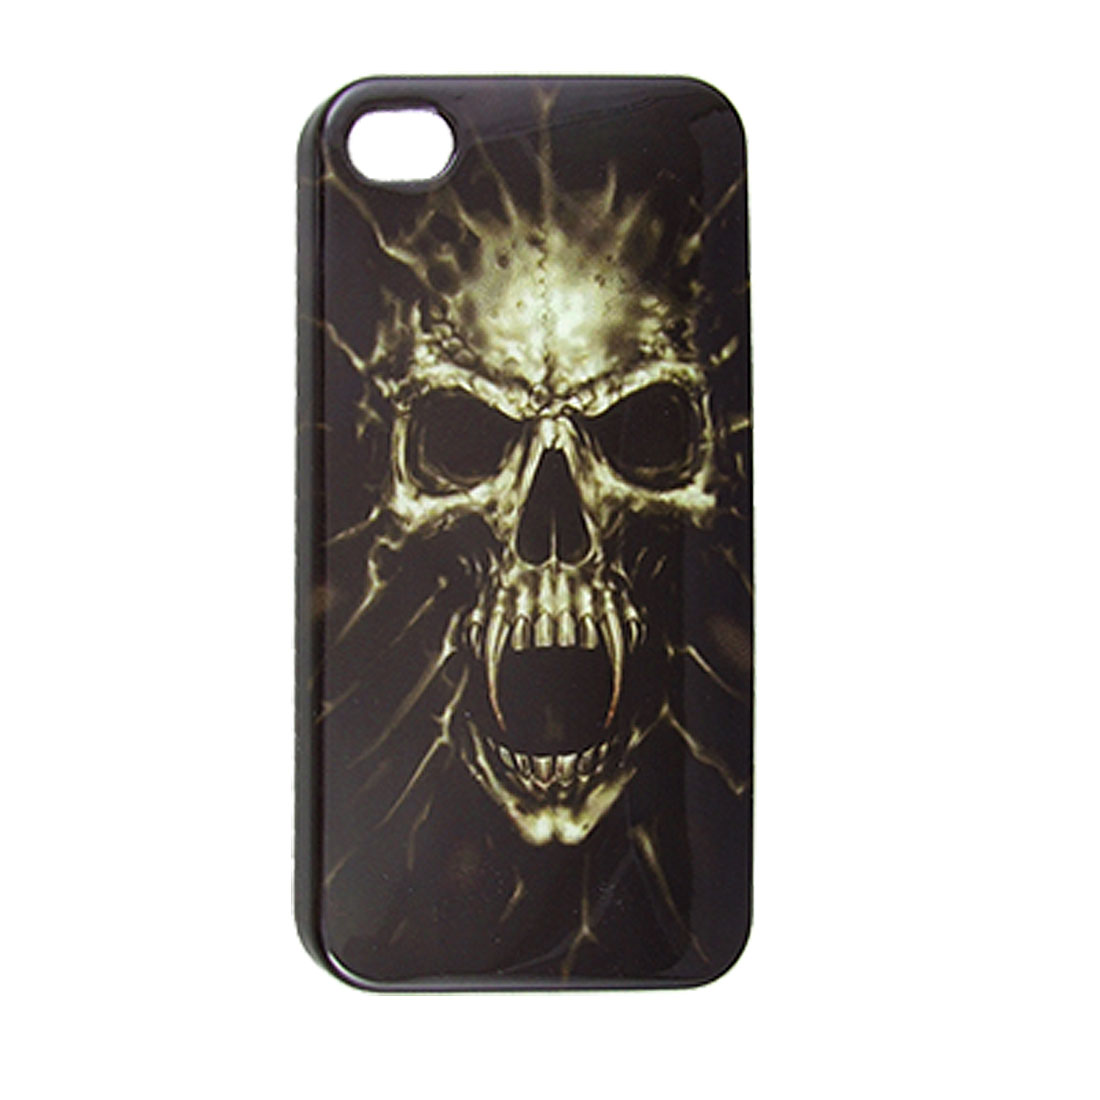 IMD Hard Plastic Skull Print Back Cover for iPhone 4 4G